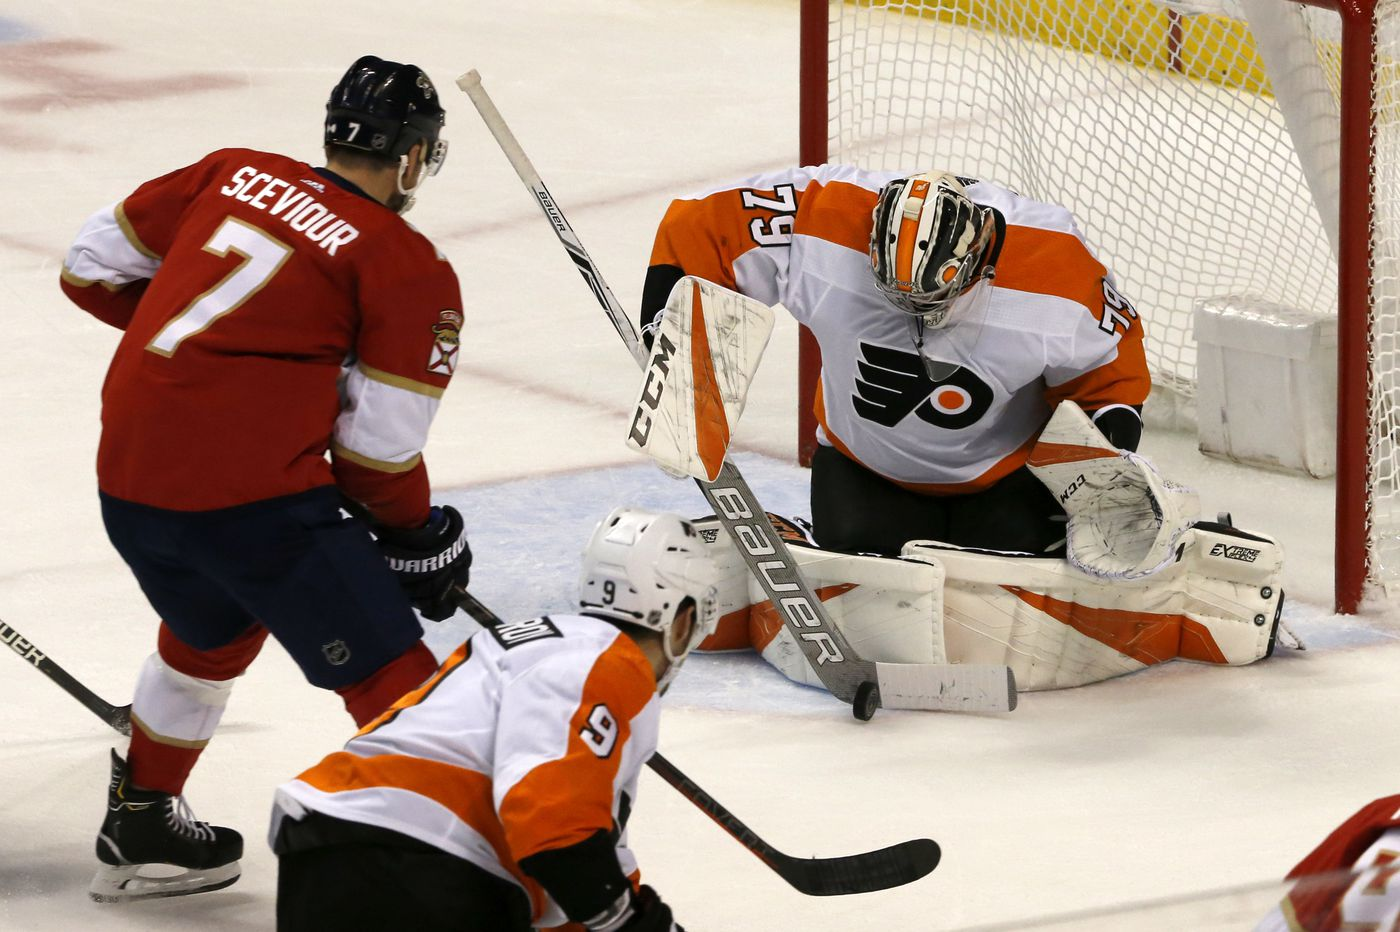 Flyers try to regroup from crushing loss; power play still struggling mightily